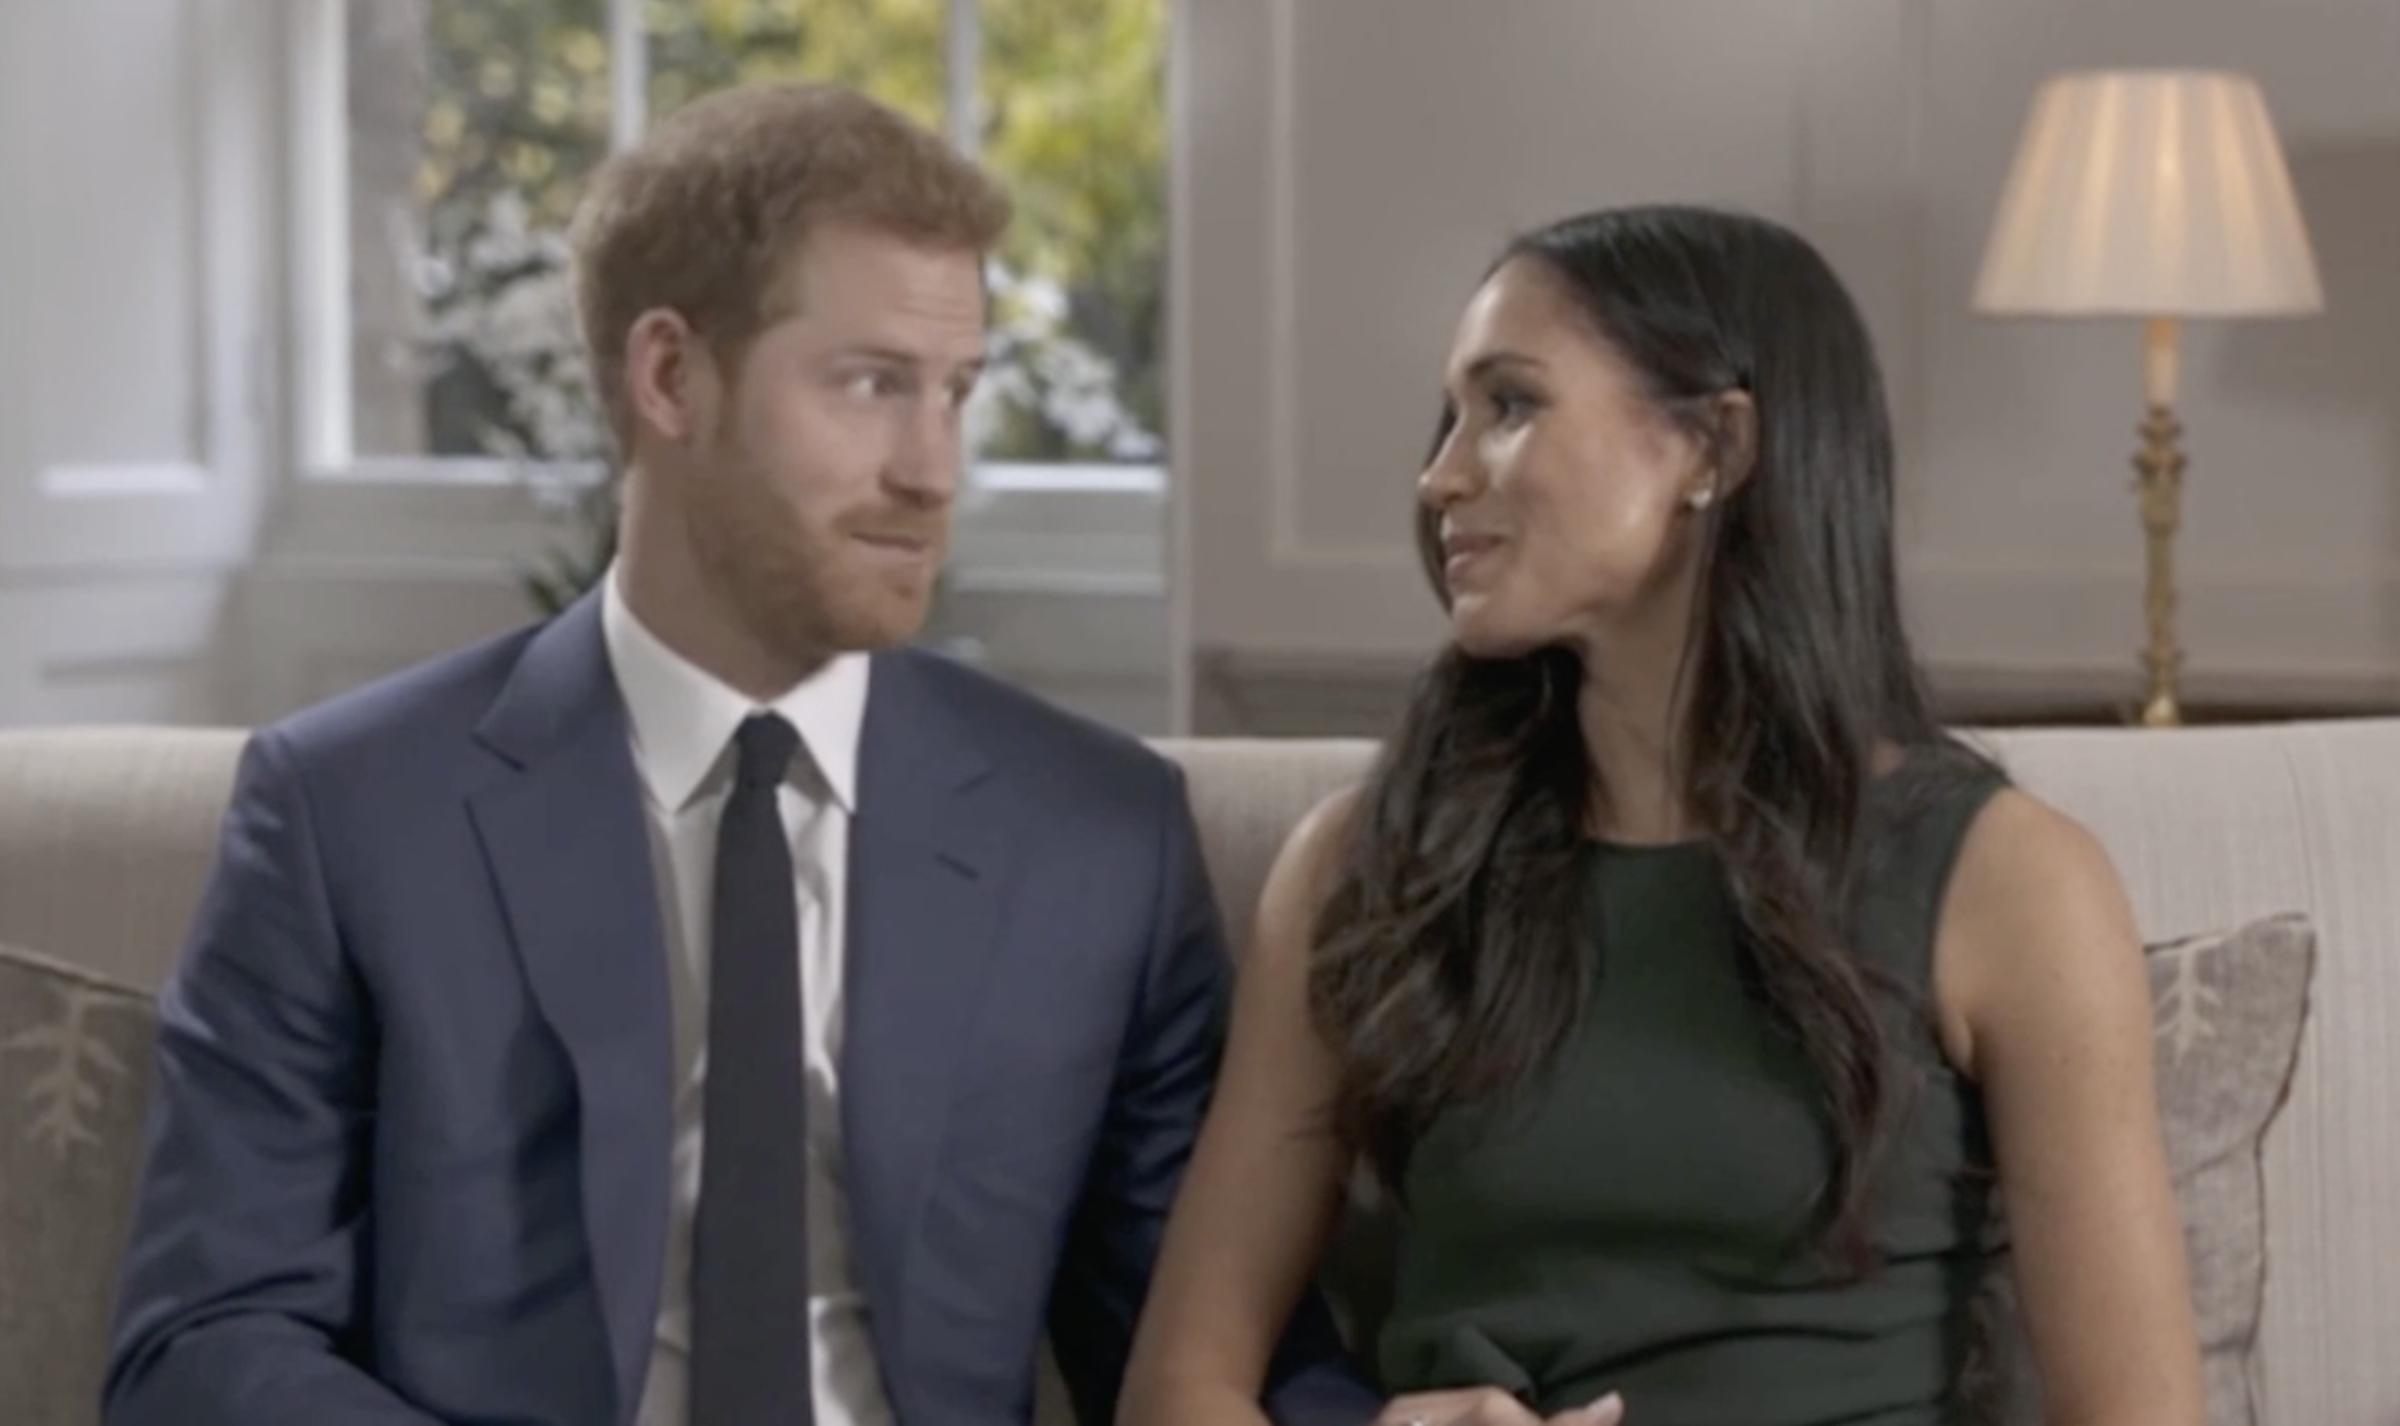 Prince Harry and Meghan Markle reveal how they fir